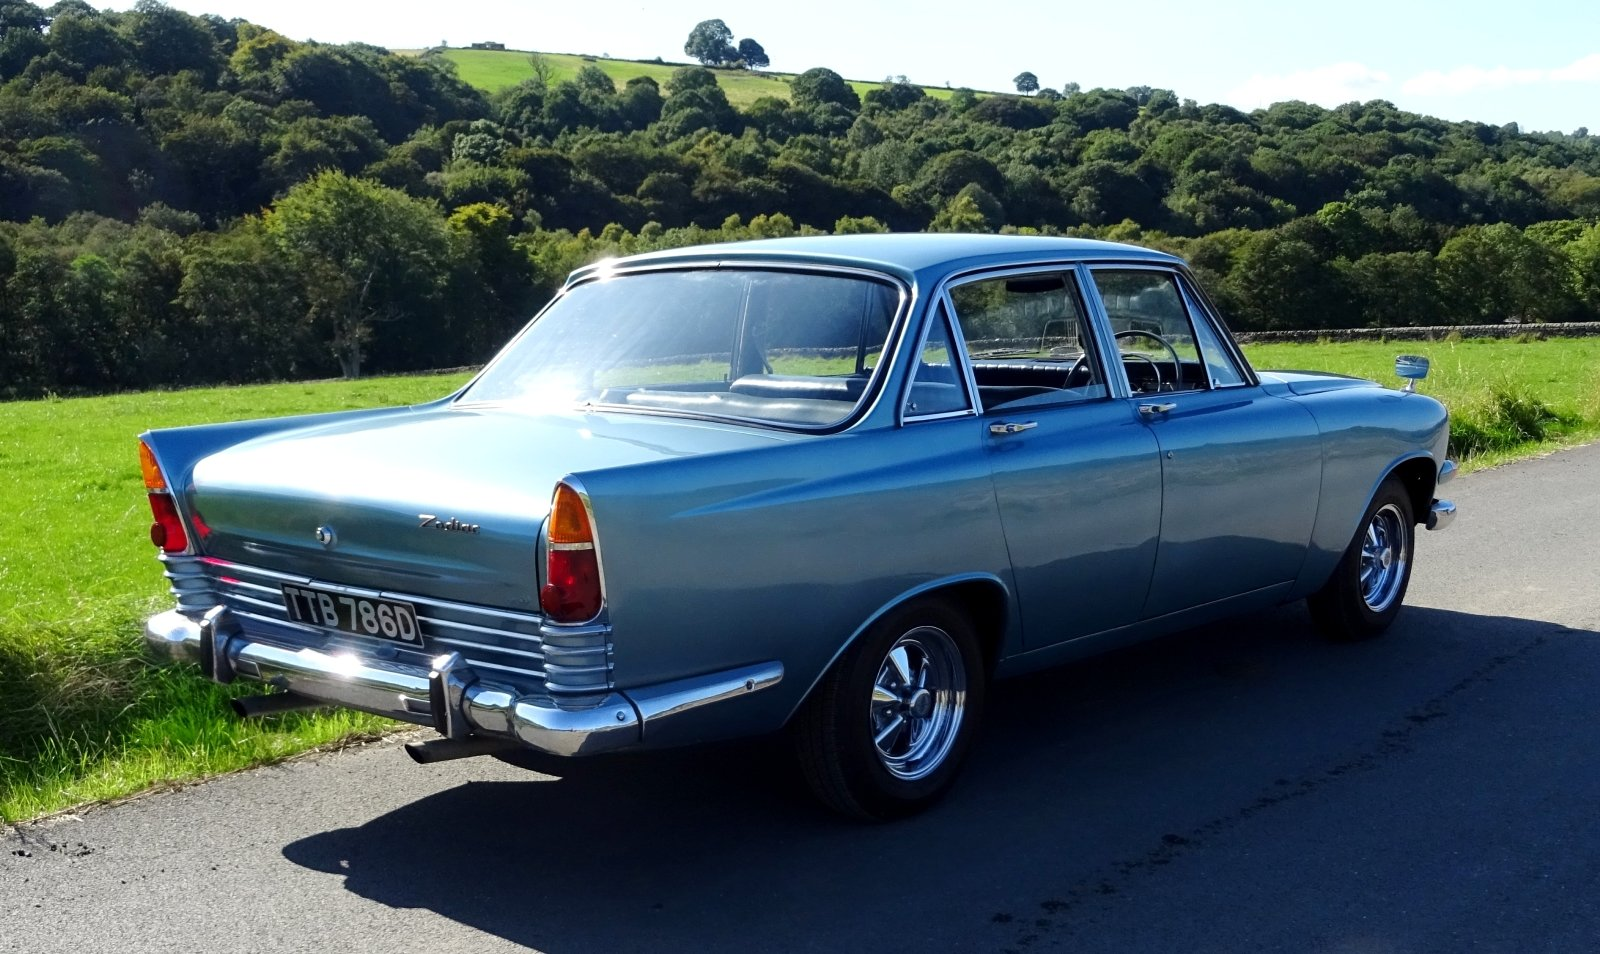 1966 FORD ZODIAC MK3 STUNNING DEEP BLUE PAINT & SPARKLING CHROME For Sale (picture 5 of 6)